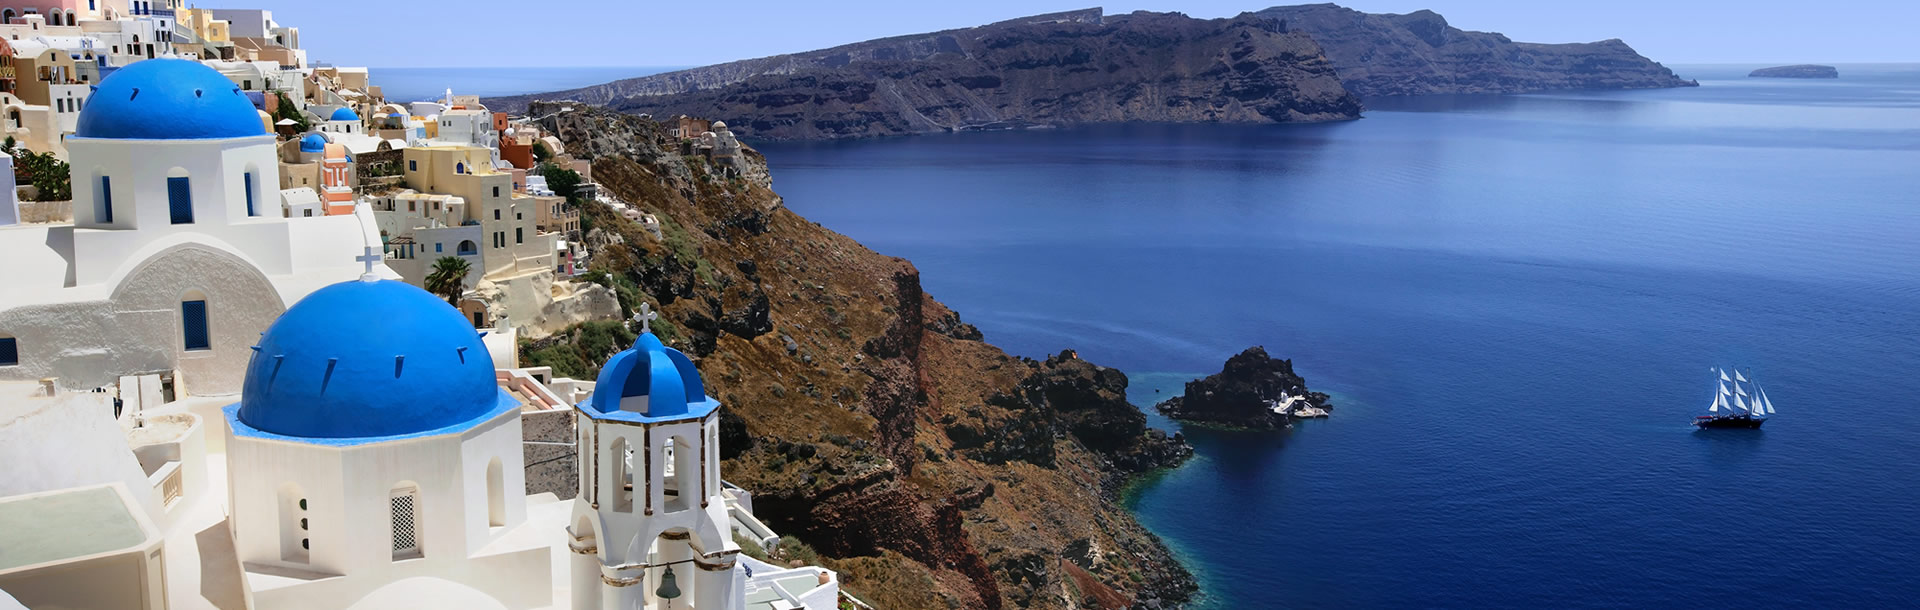 Travel Insurance Services Santorini, Greek Isles